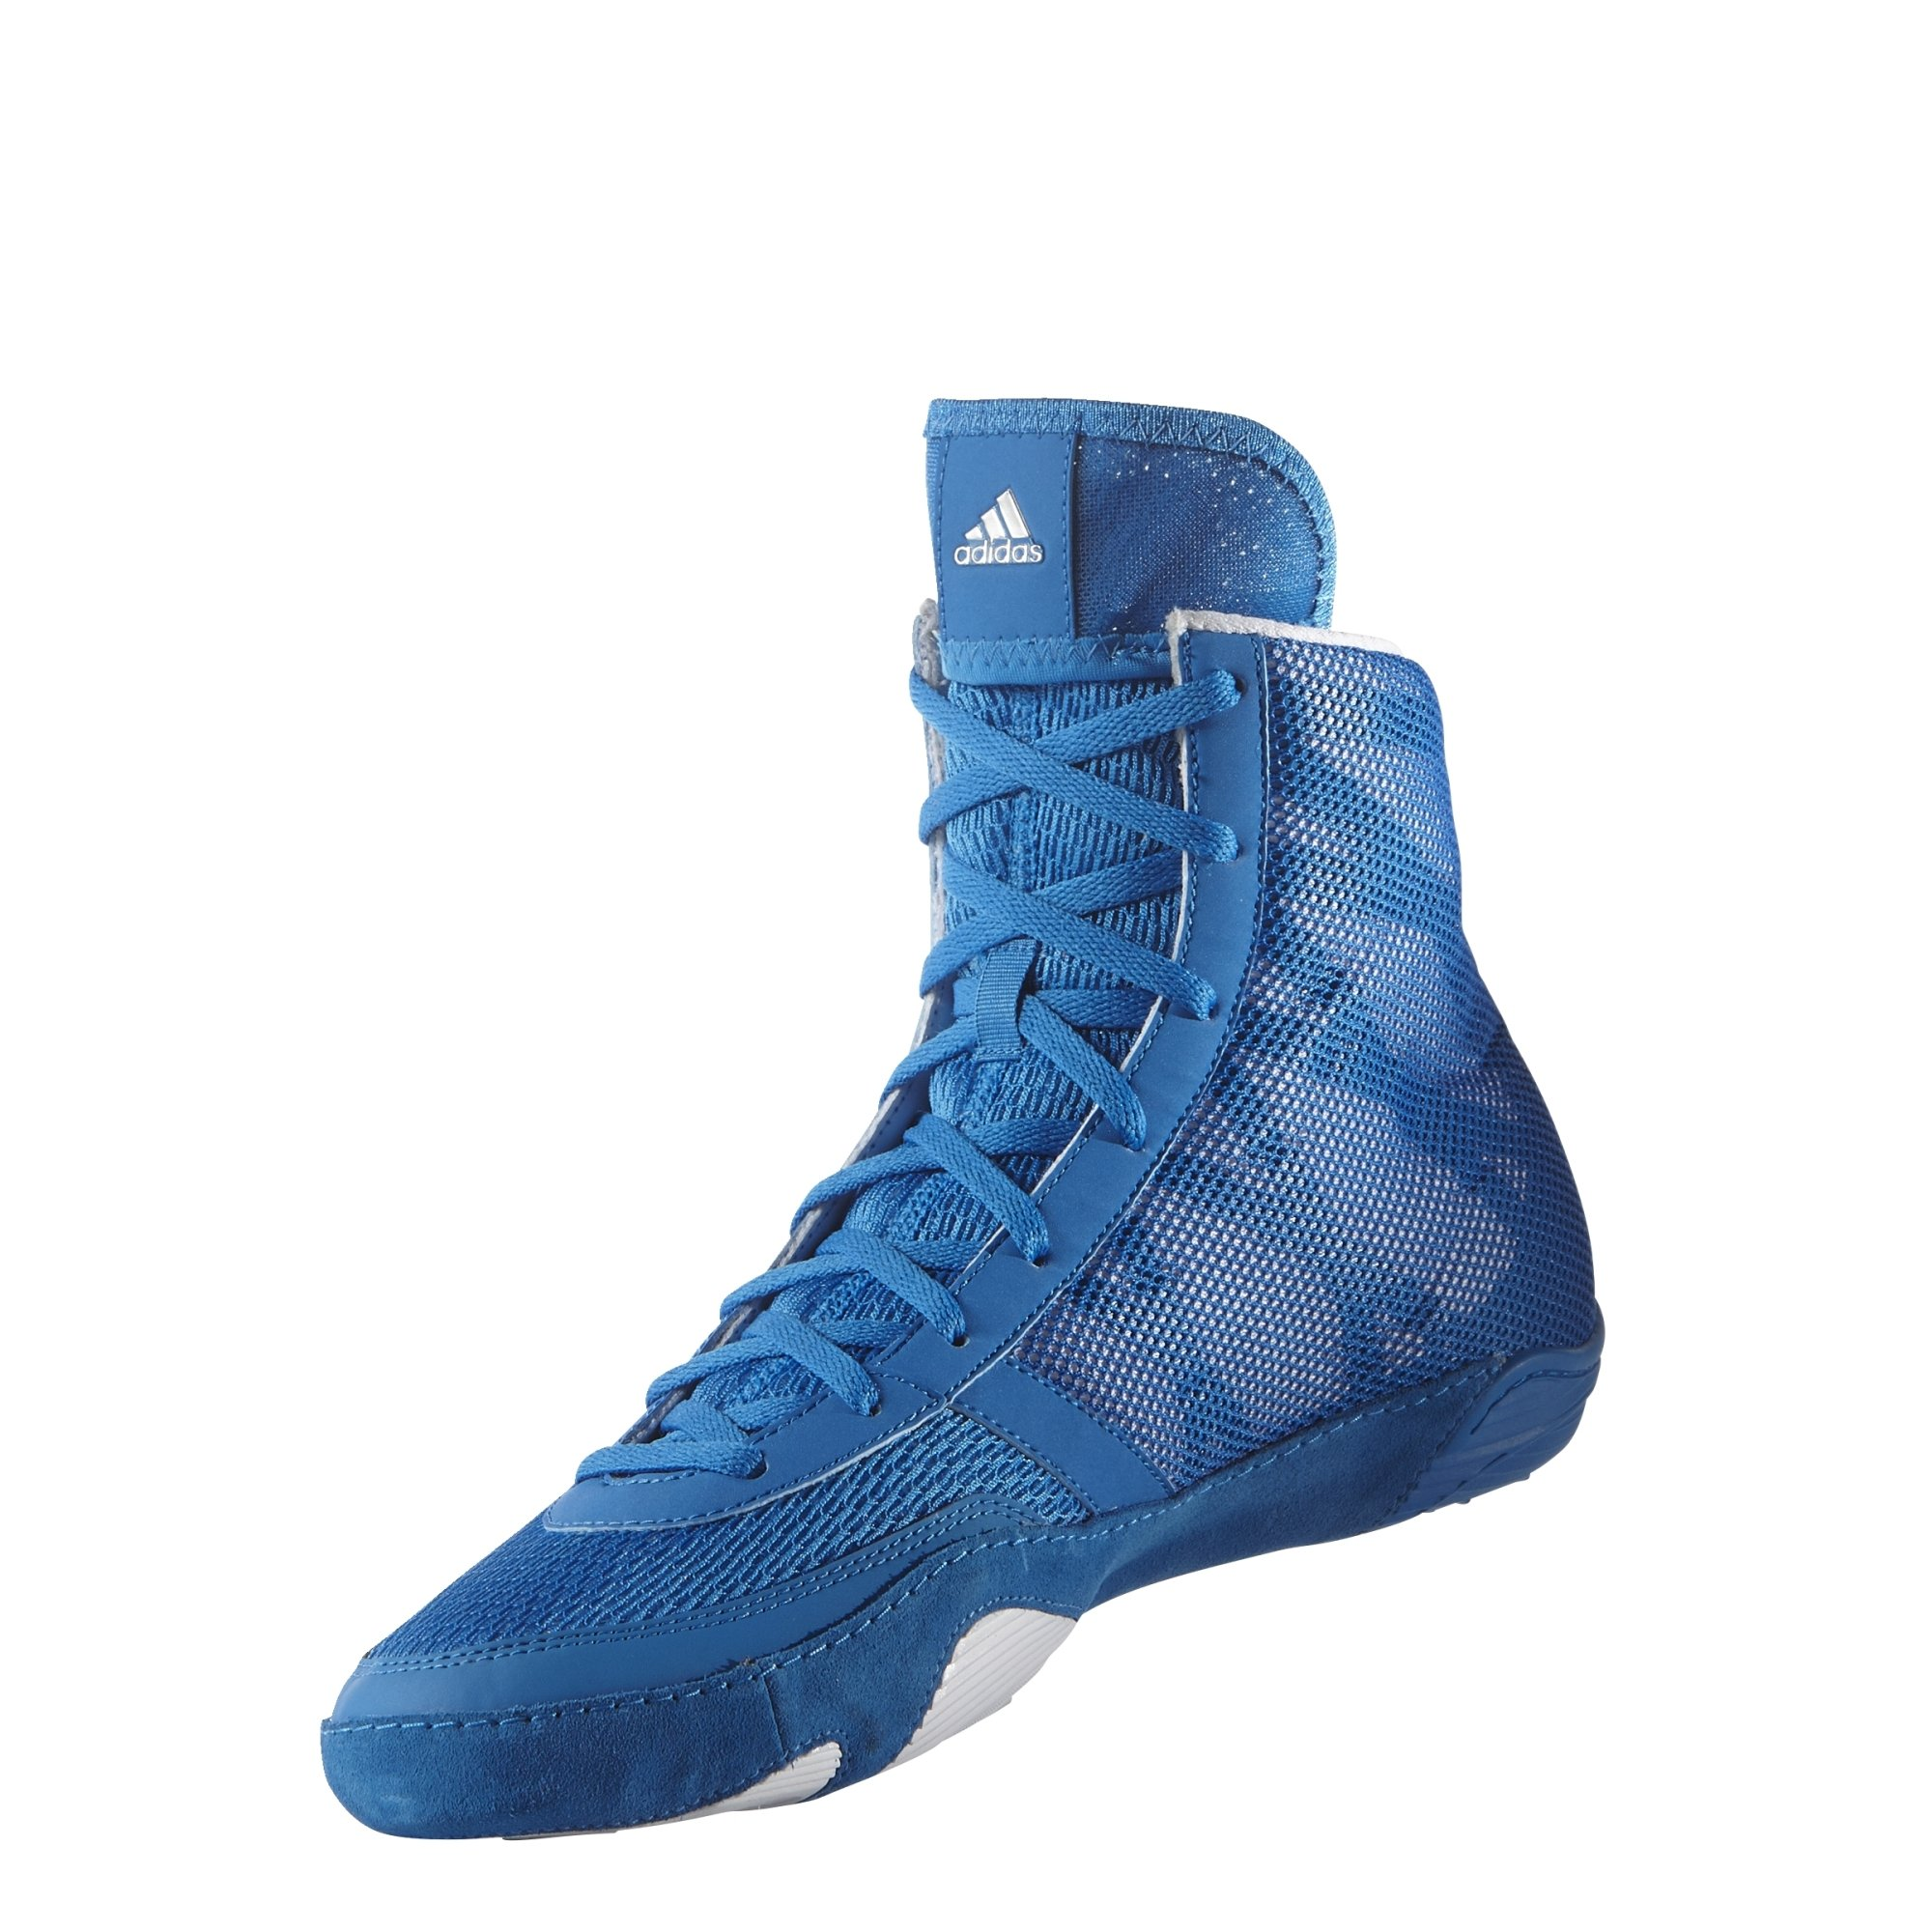 Adidas Pretereo III Wrestling Shoes - Royal/Silver/White - 7.5 by adidas